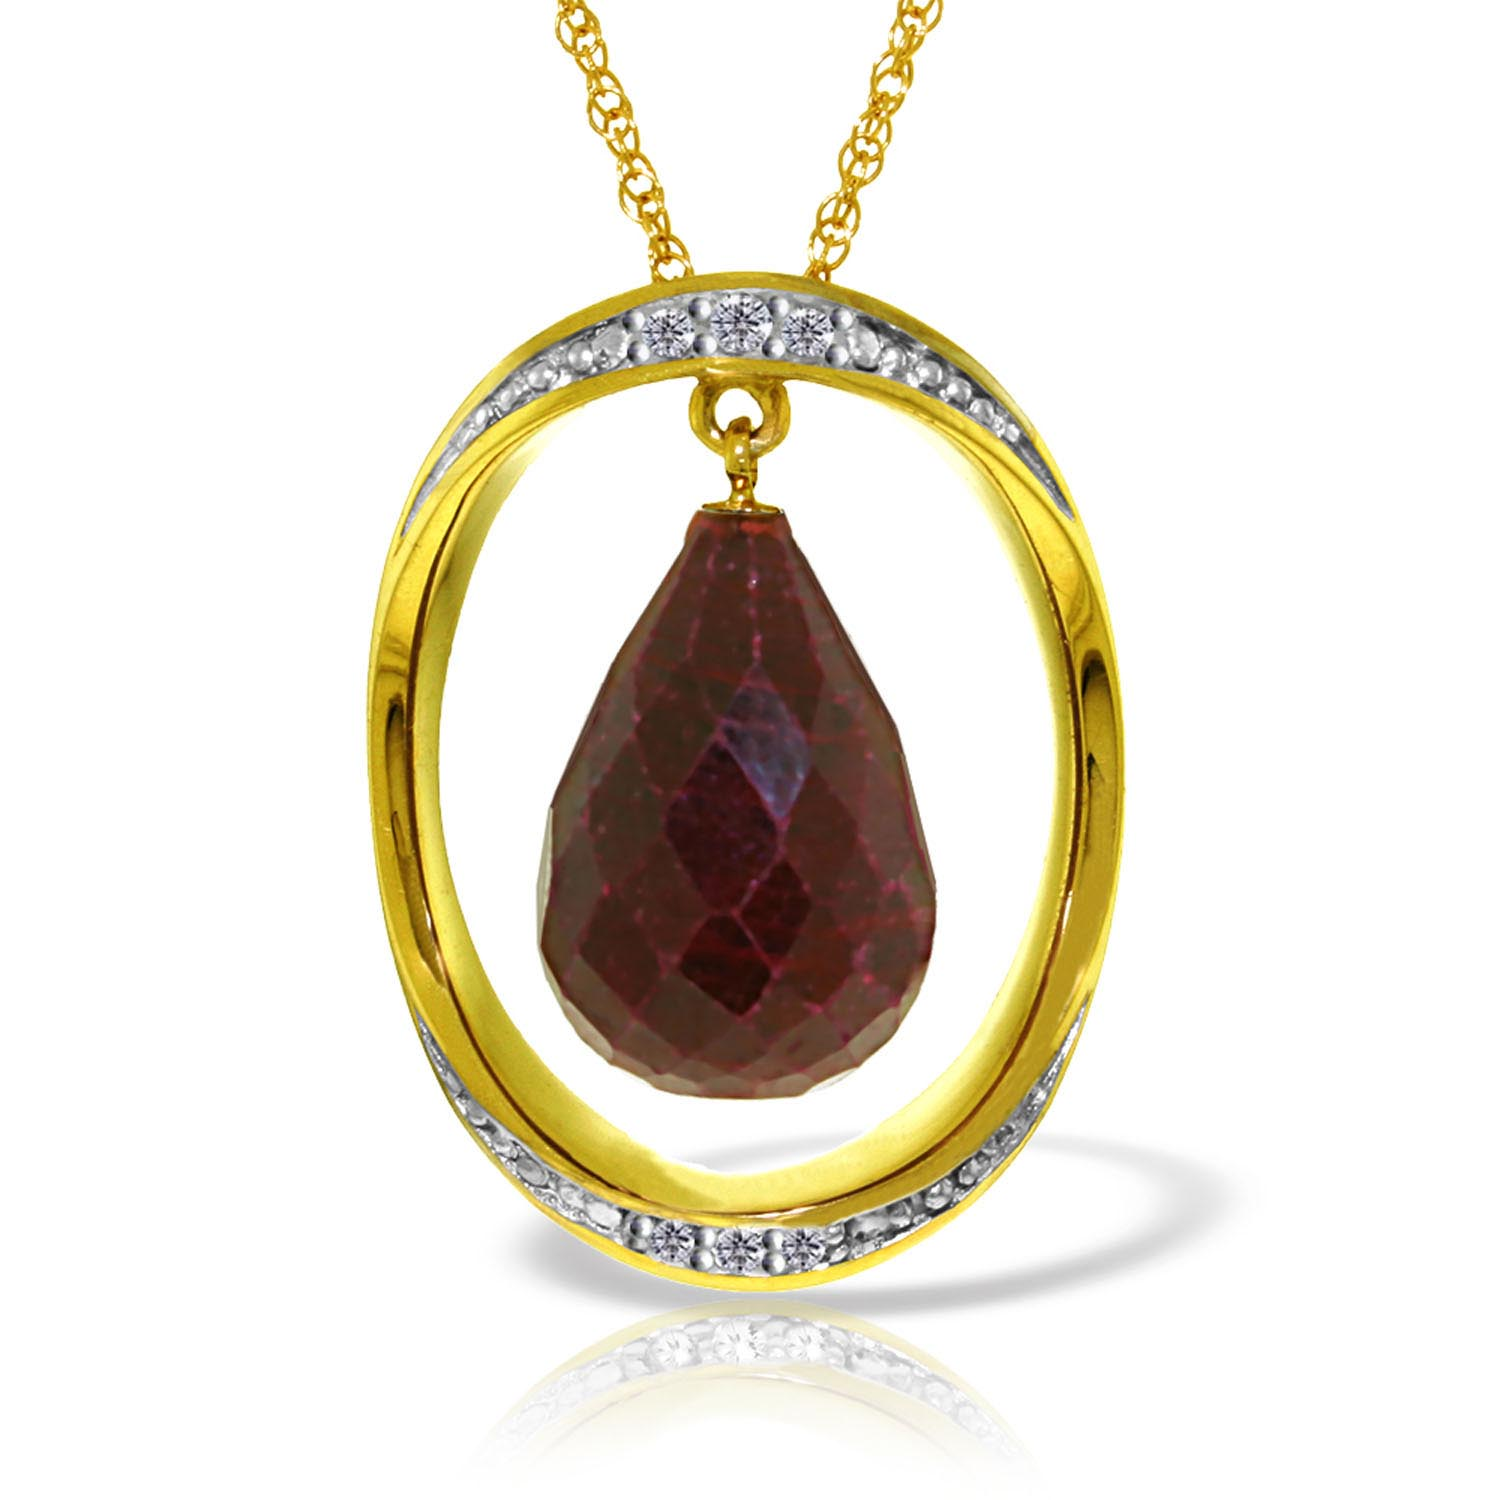 Ruby and Diamond Pendant Necklace 13.5ct in 9ct Gold